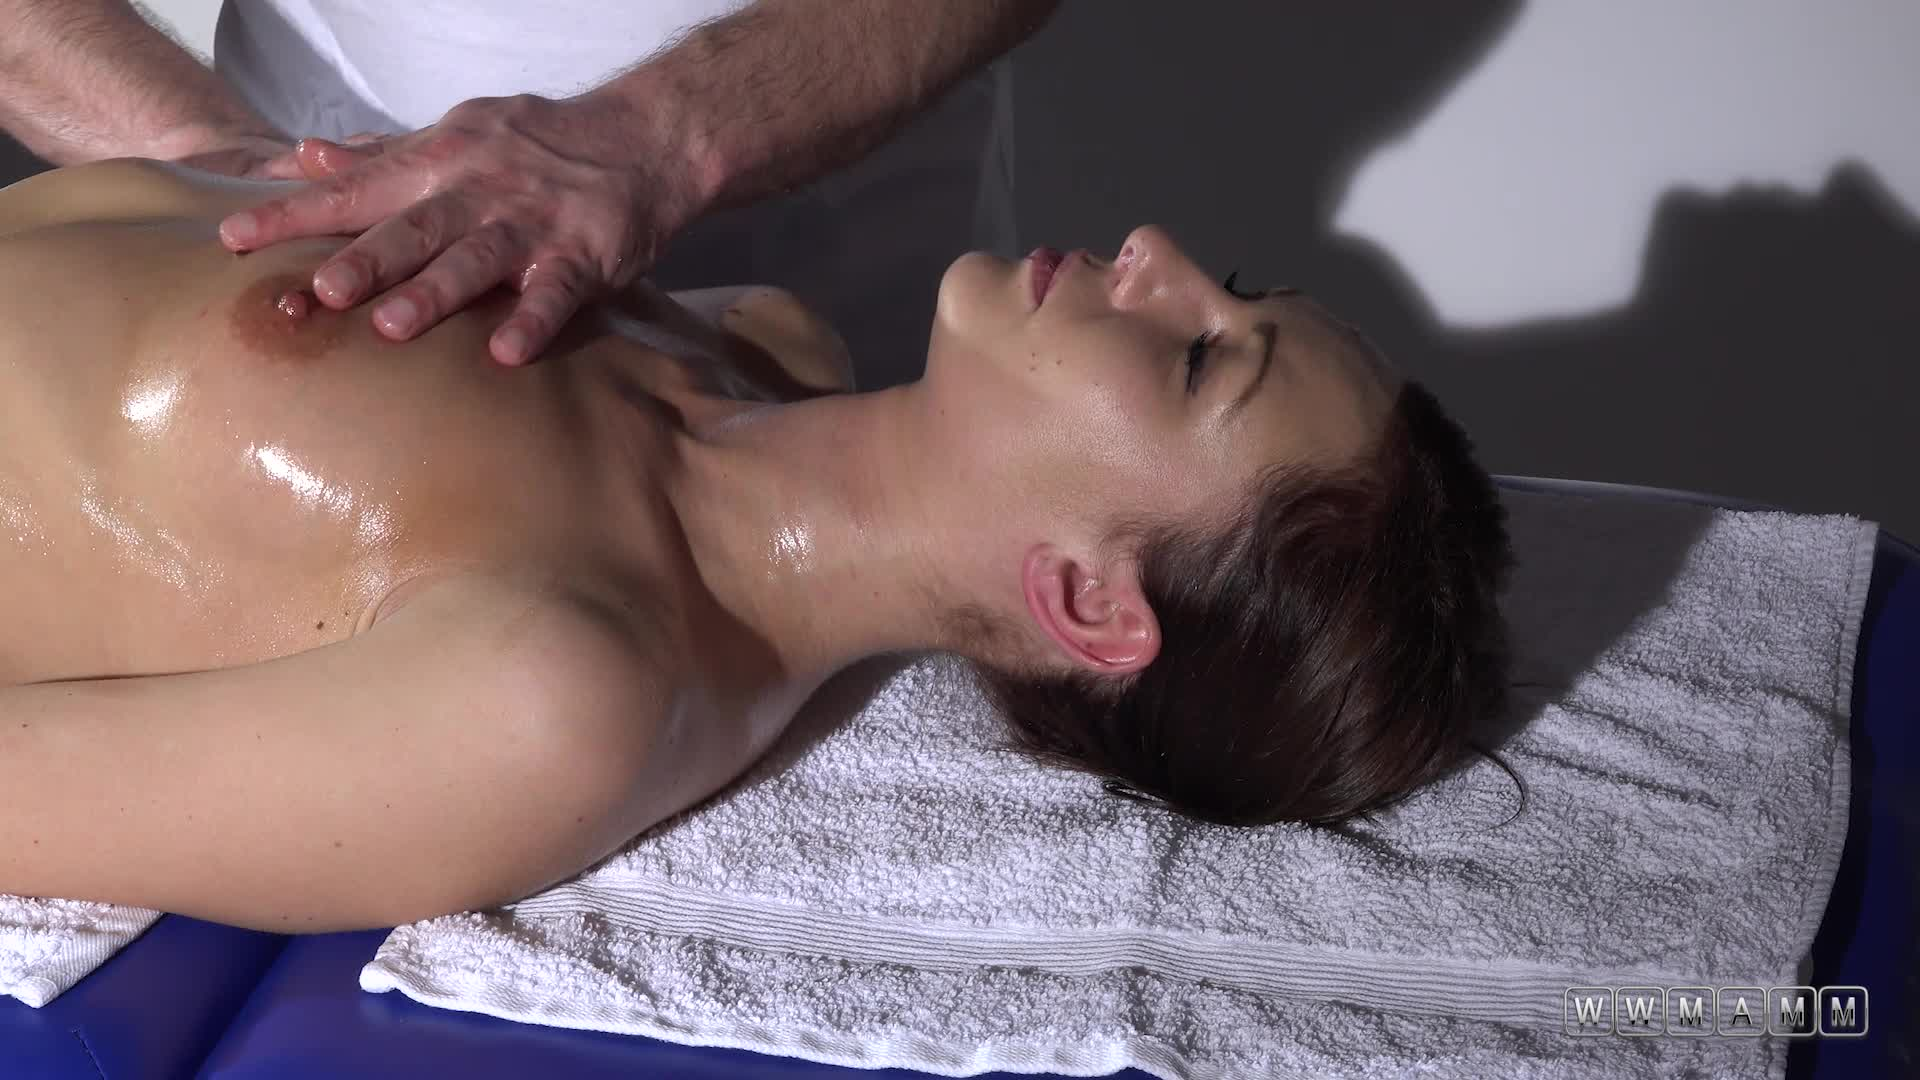 When Kara Rose Showed Up The Masseur Knew It Was His Lucky Day